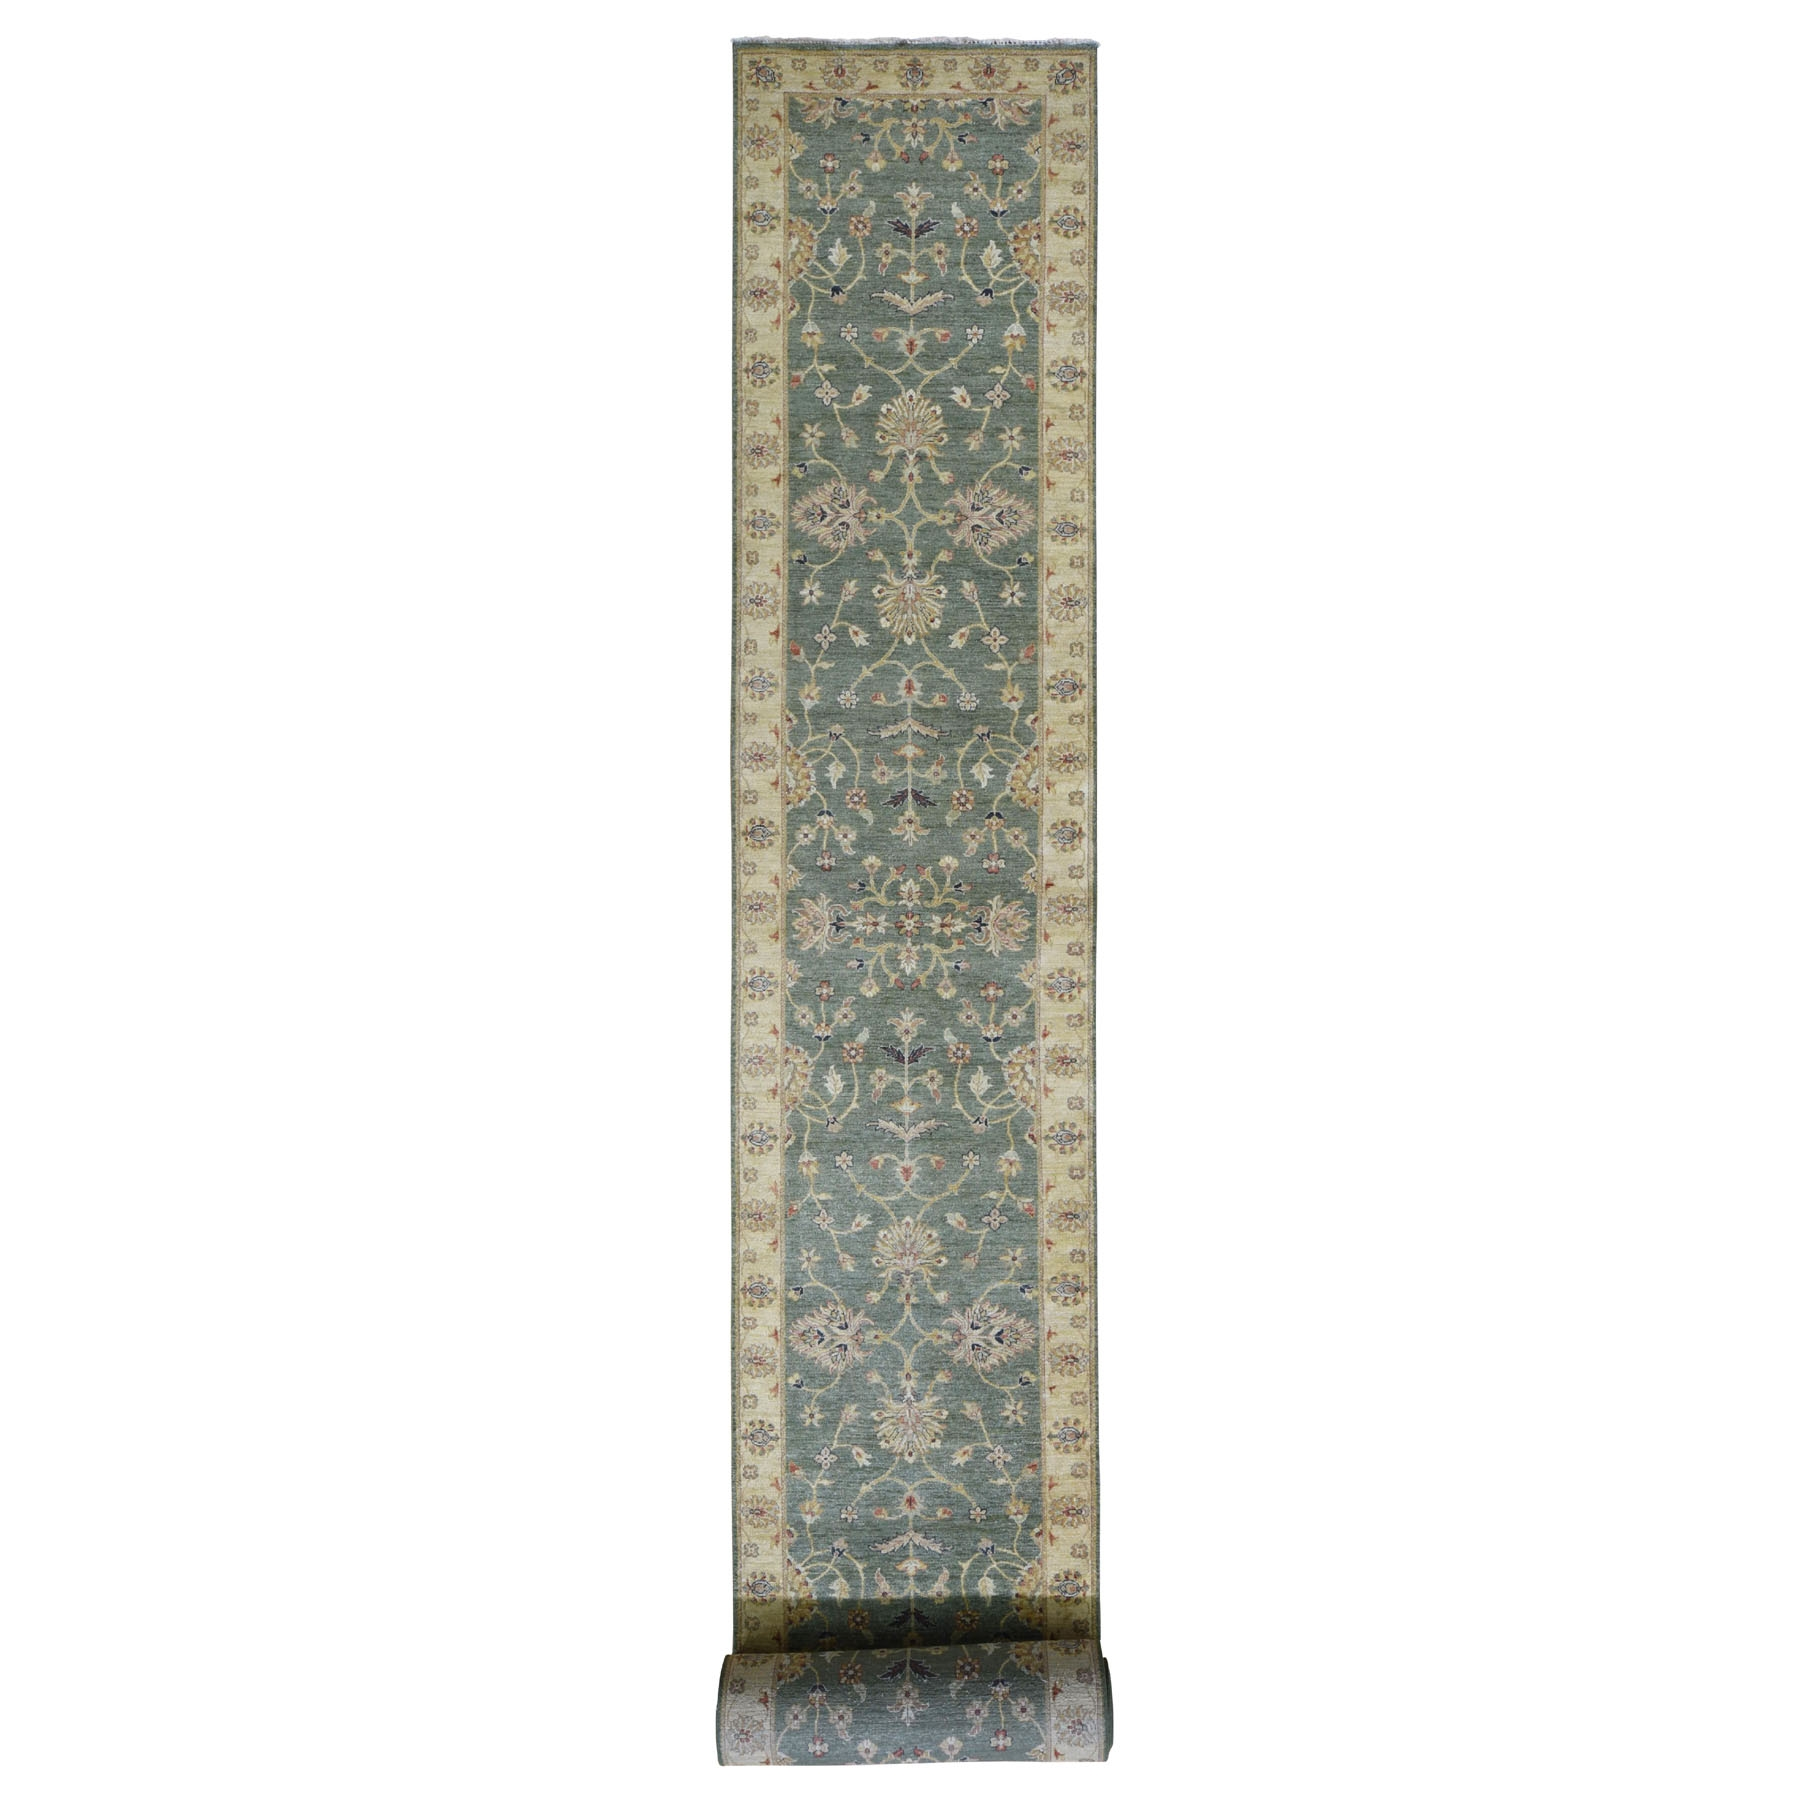 Agra And Turkish Collection Hand Knotted Green Rug No: 196606